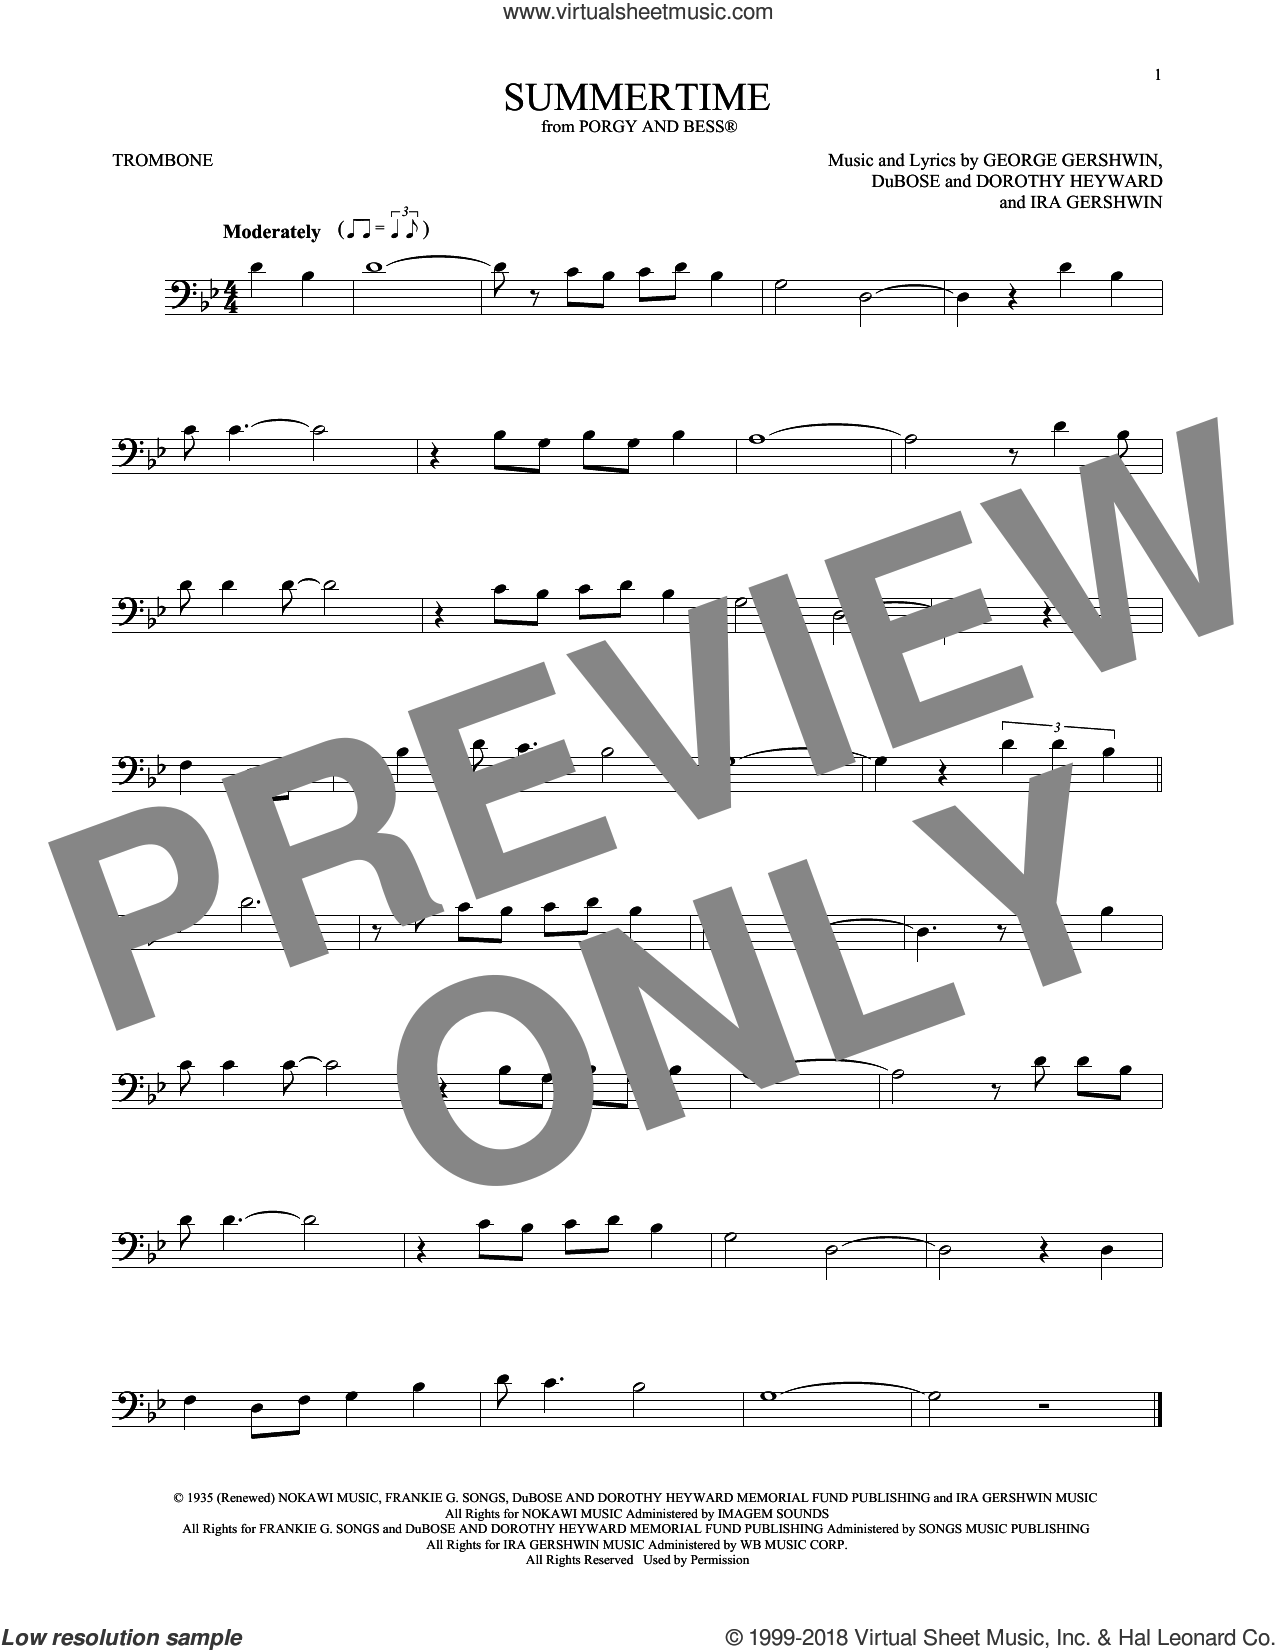 Summertime sheet music for trombone solo by George Gershwin, Dorothy Heyward, DuBose Heyward and Ira Gershwin, intermediate skill level